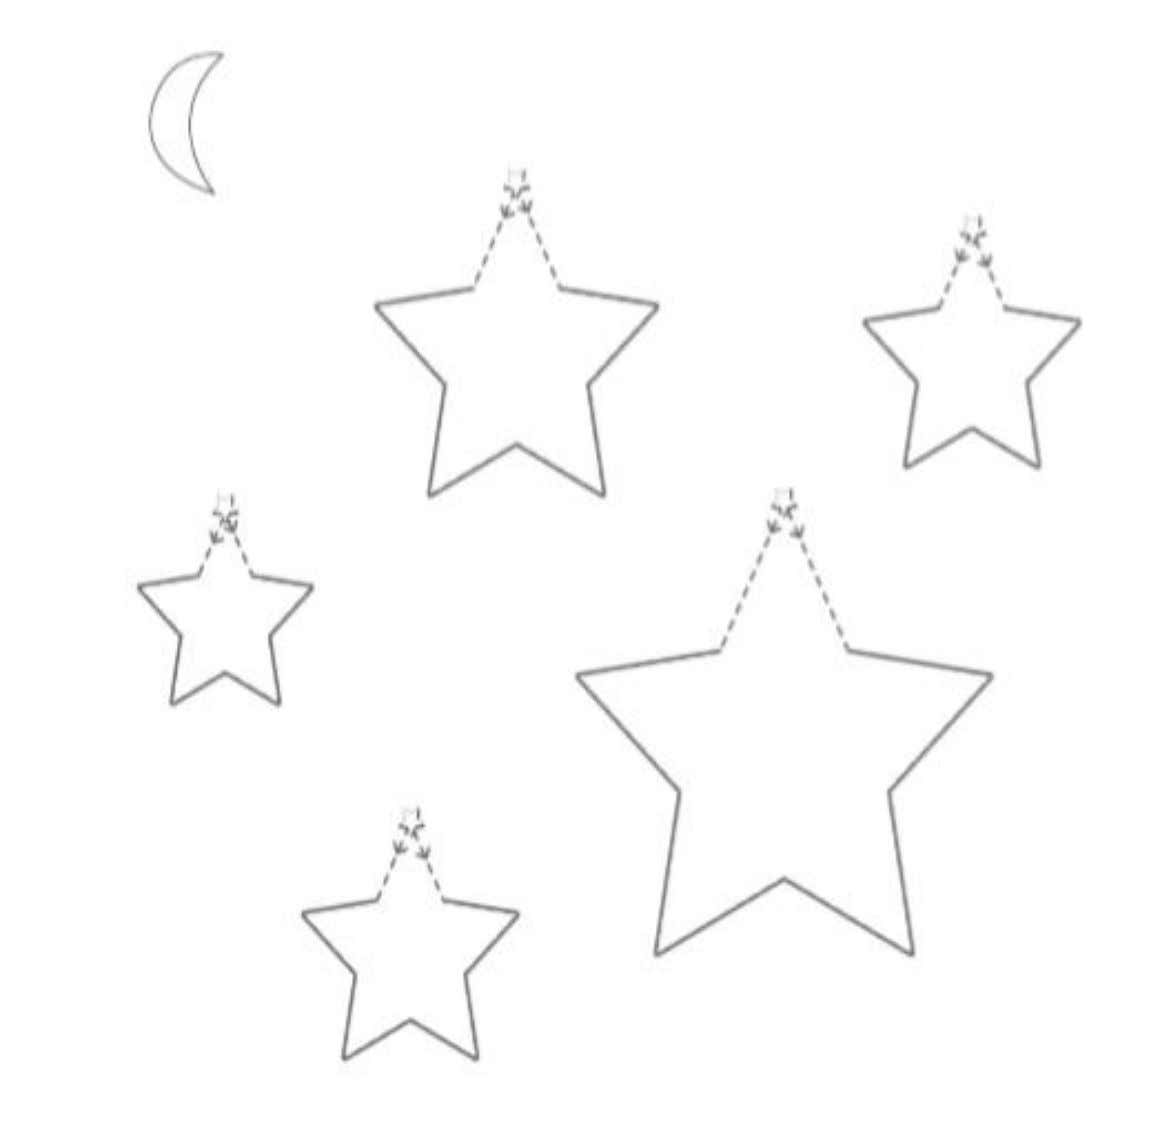 II. Trace the dotted diagonal lines starting at the small stars on top of each larger